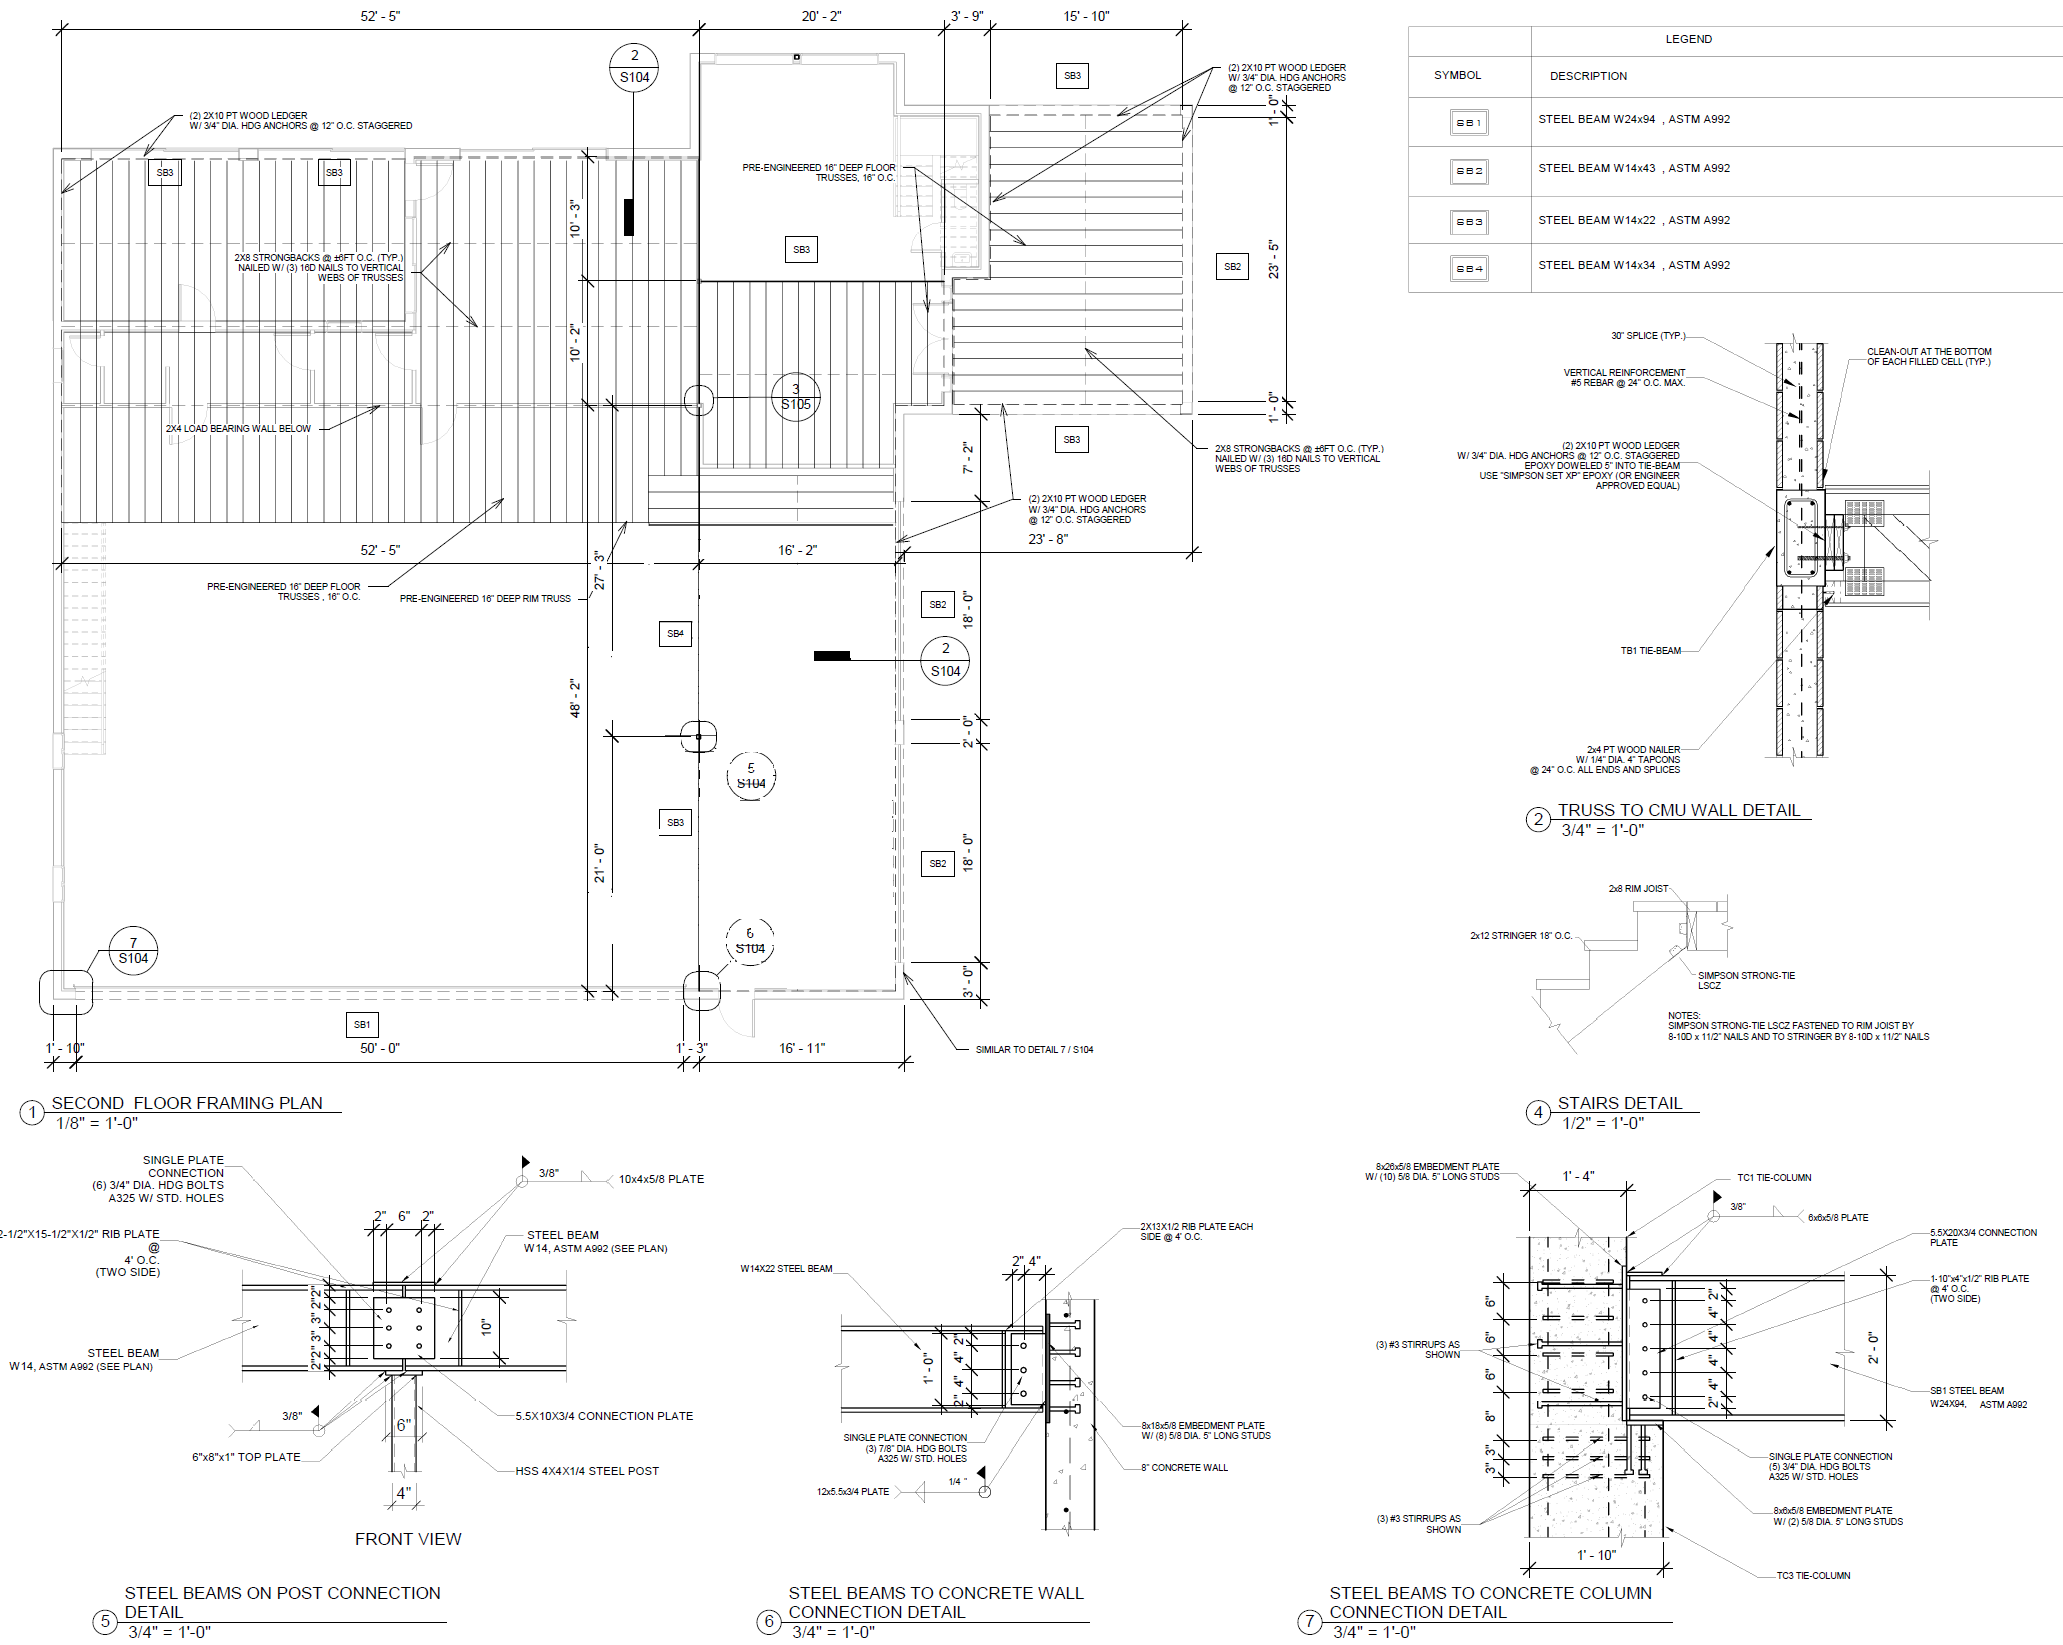 Residential | Moment Engineering, Inc